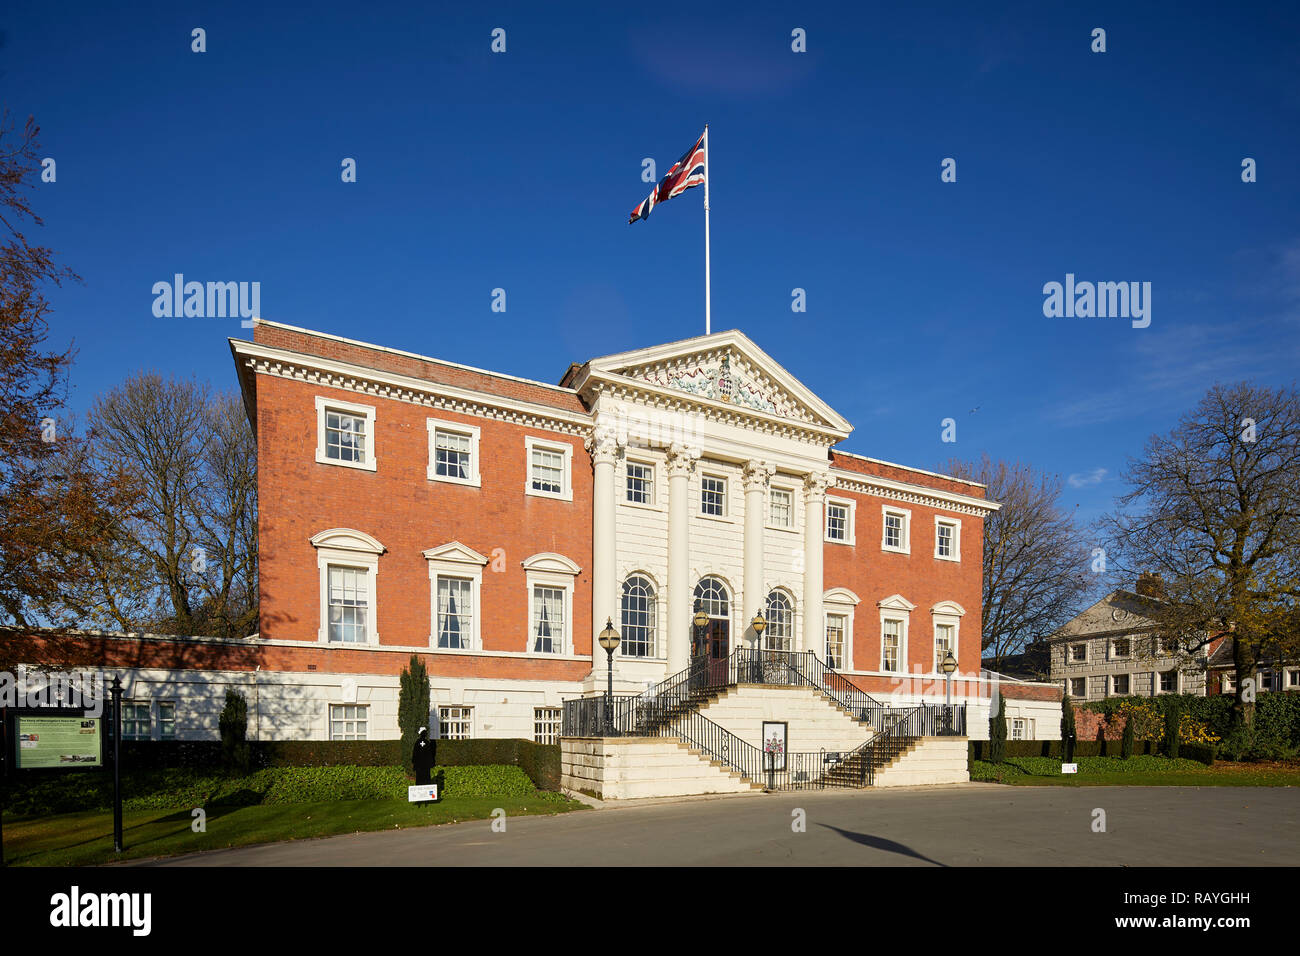 former house palladian style Warrington Town Hall, Cheshire, England originally called Bank Hall Grade I listed building by architect James Gibbs - Stock Image